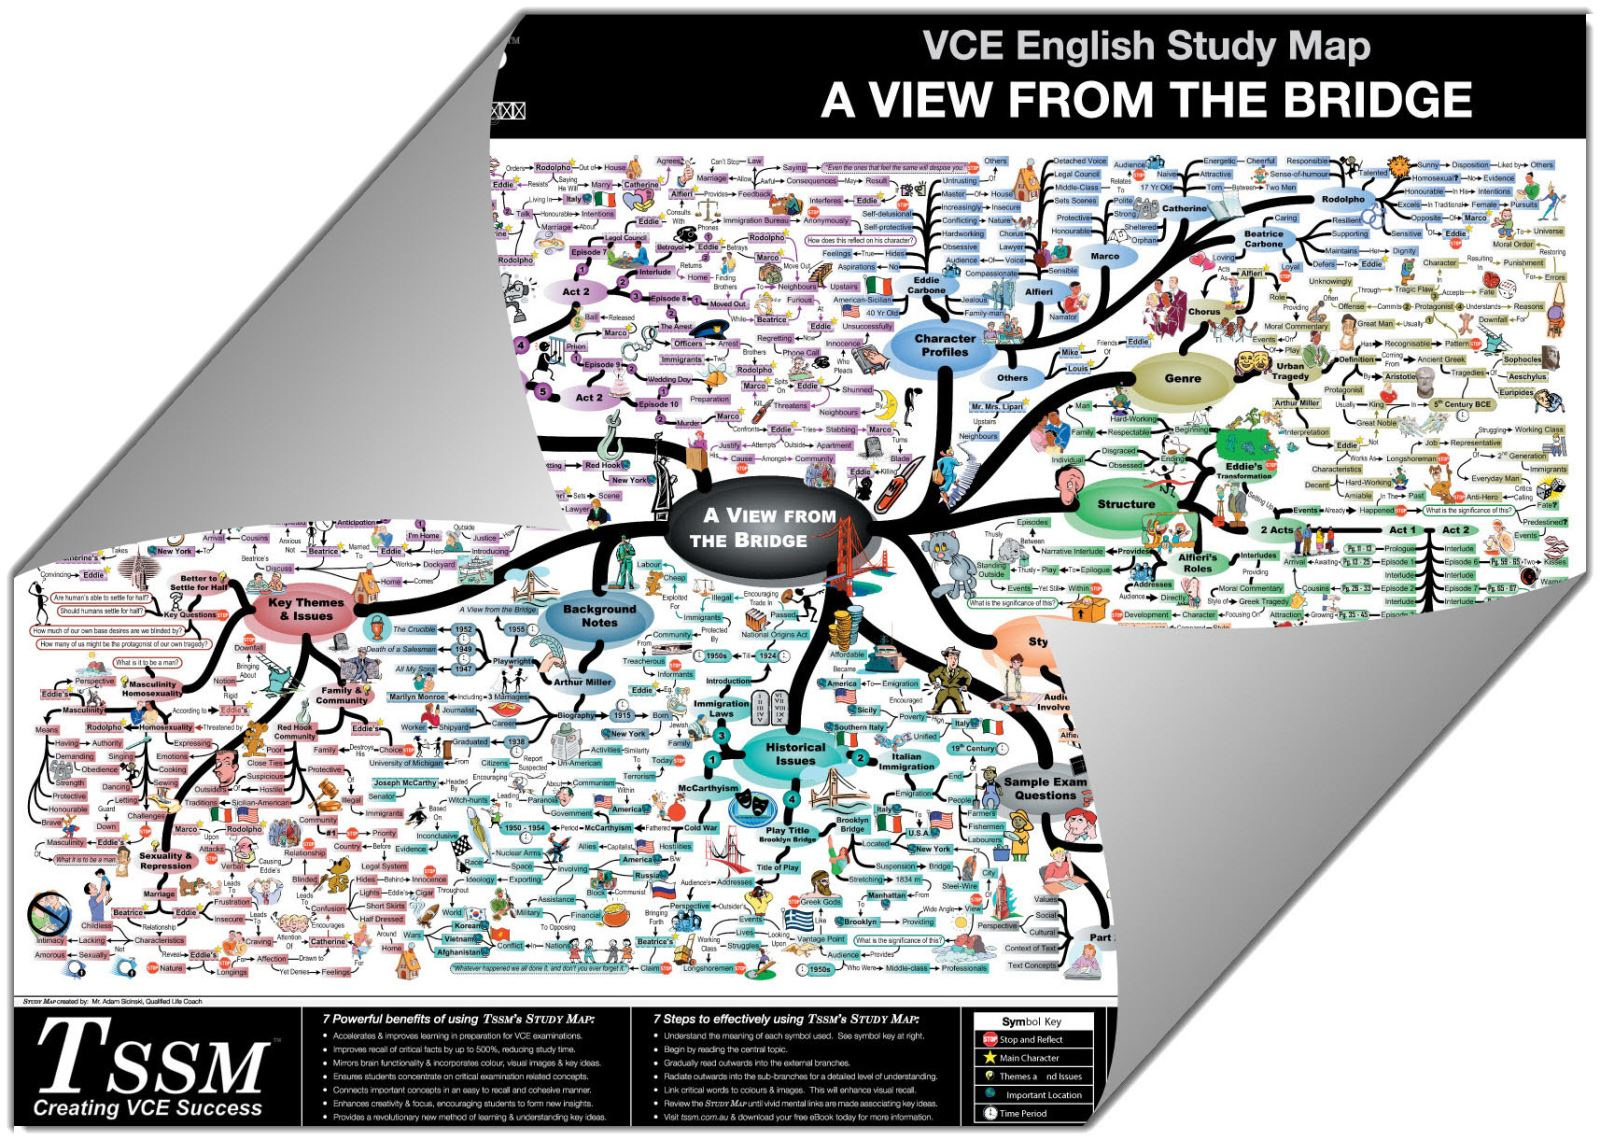 VCE A View from the Bridge - Study Map